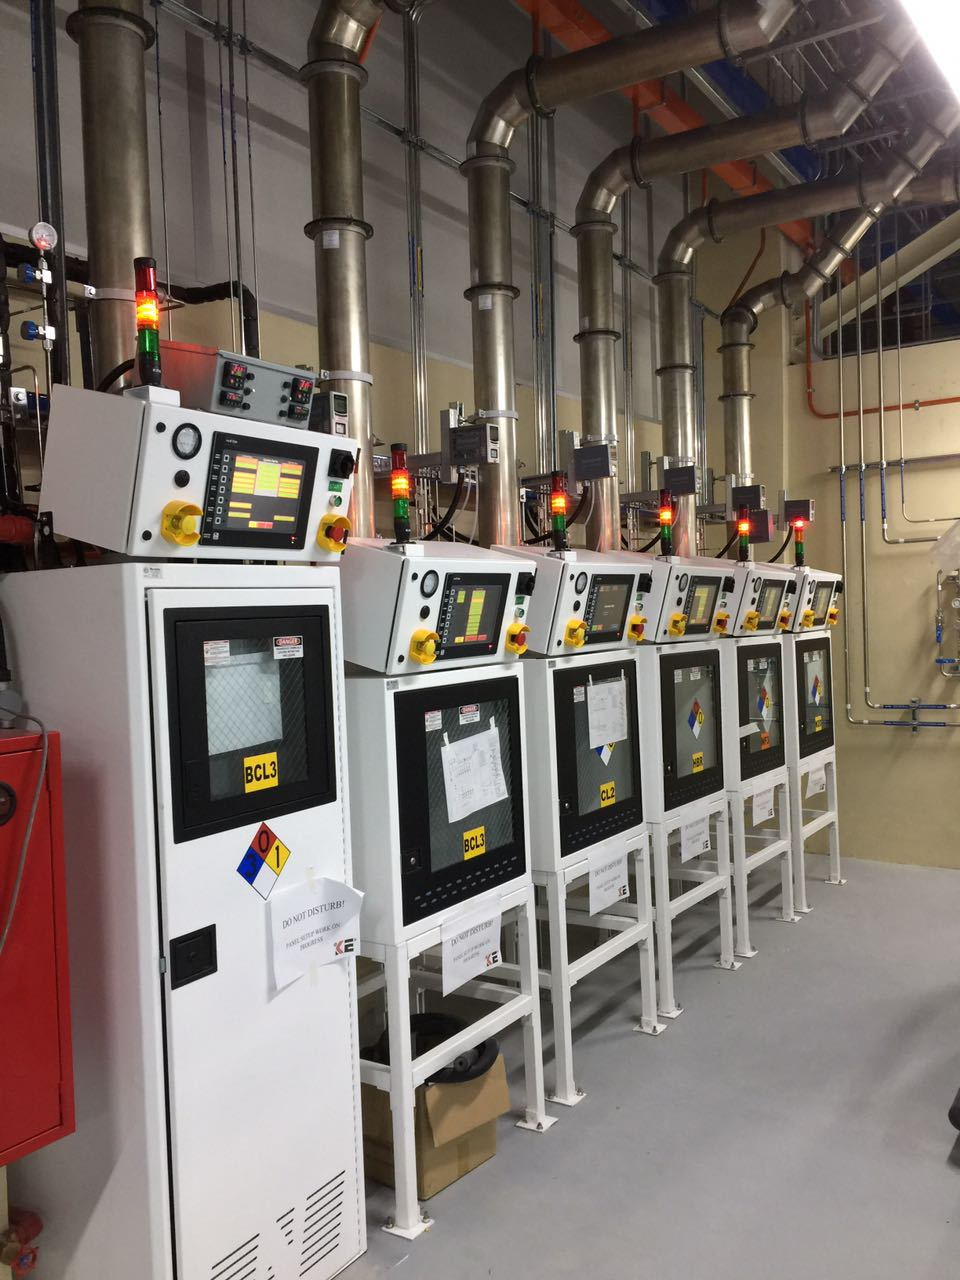 We Also Work With Major Gas Cabinet Manufacturers To Provide Our Clients  With A Wide Range Of Solutions That Meet Their Needs.